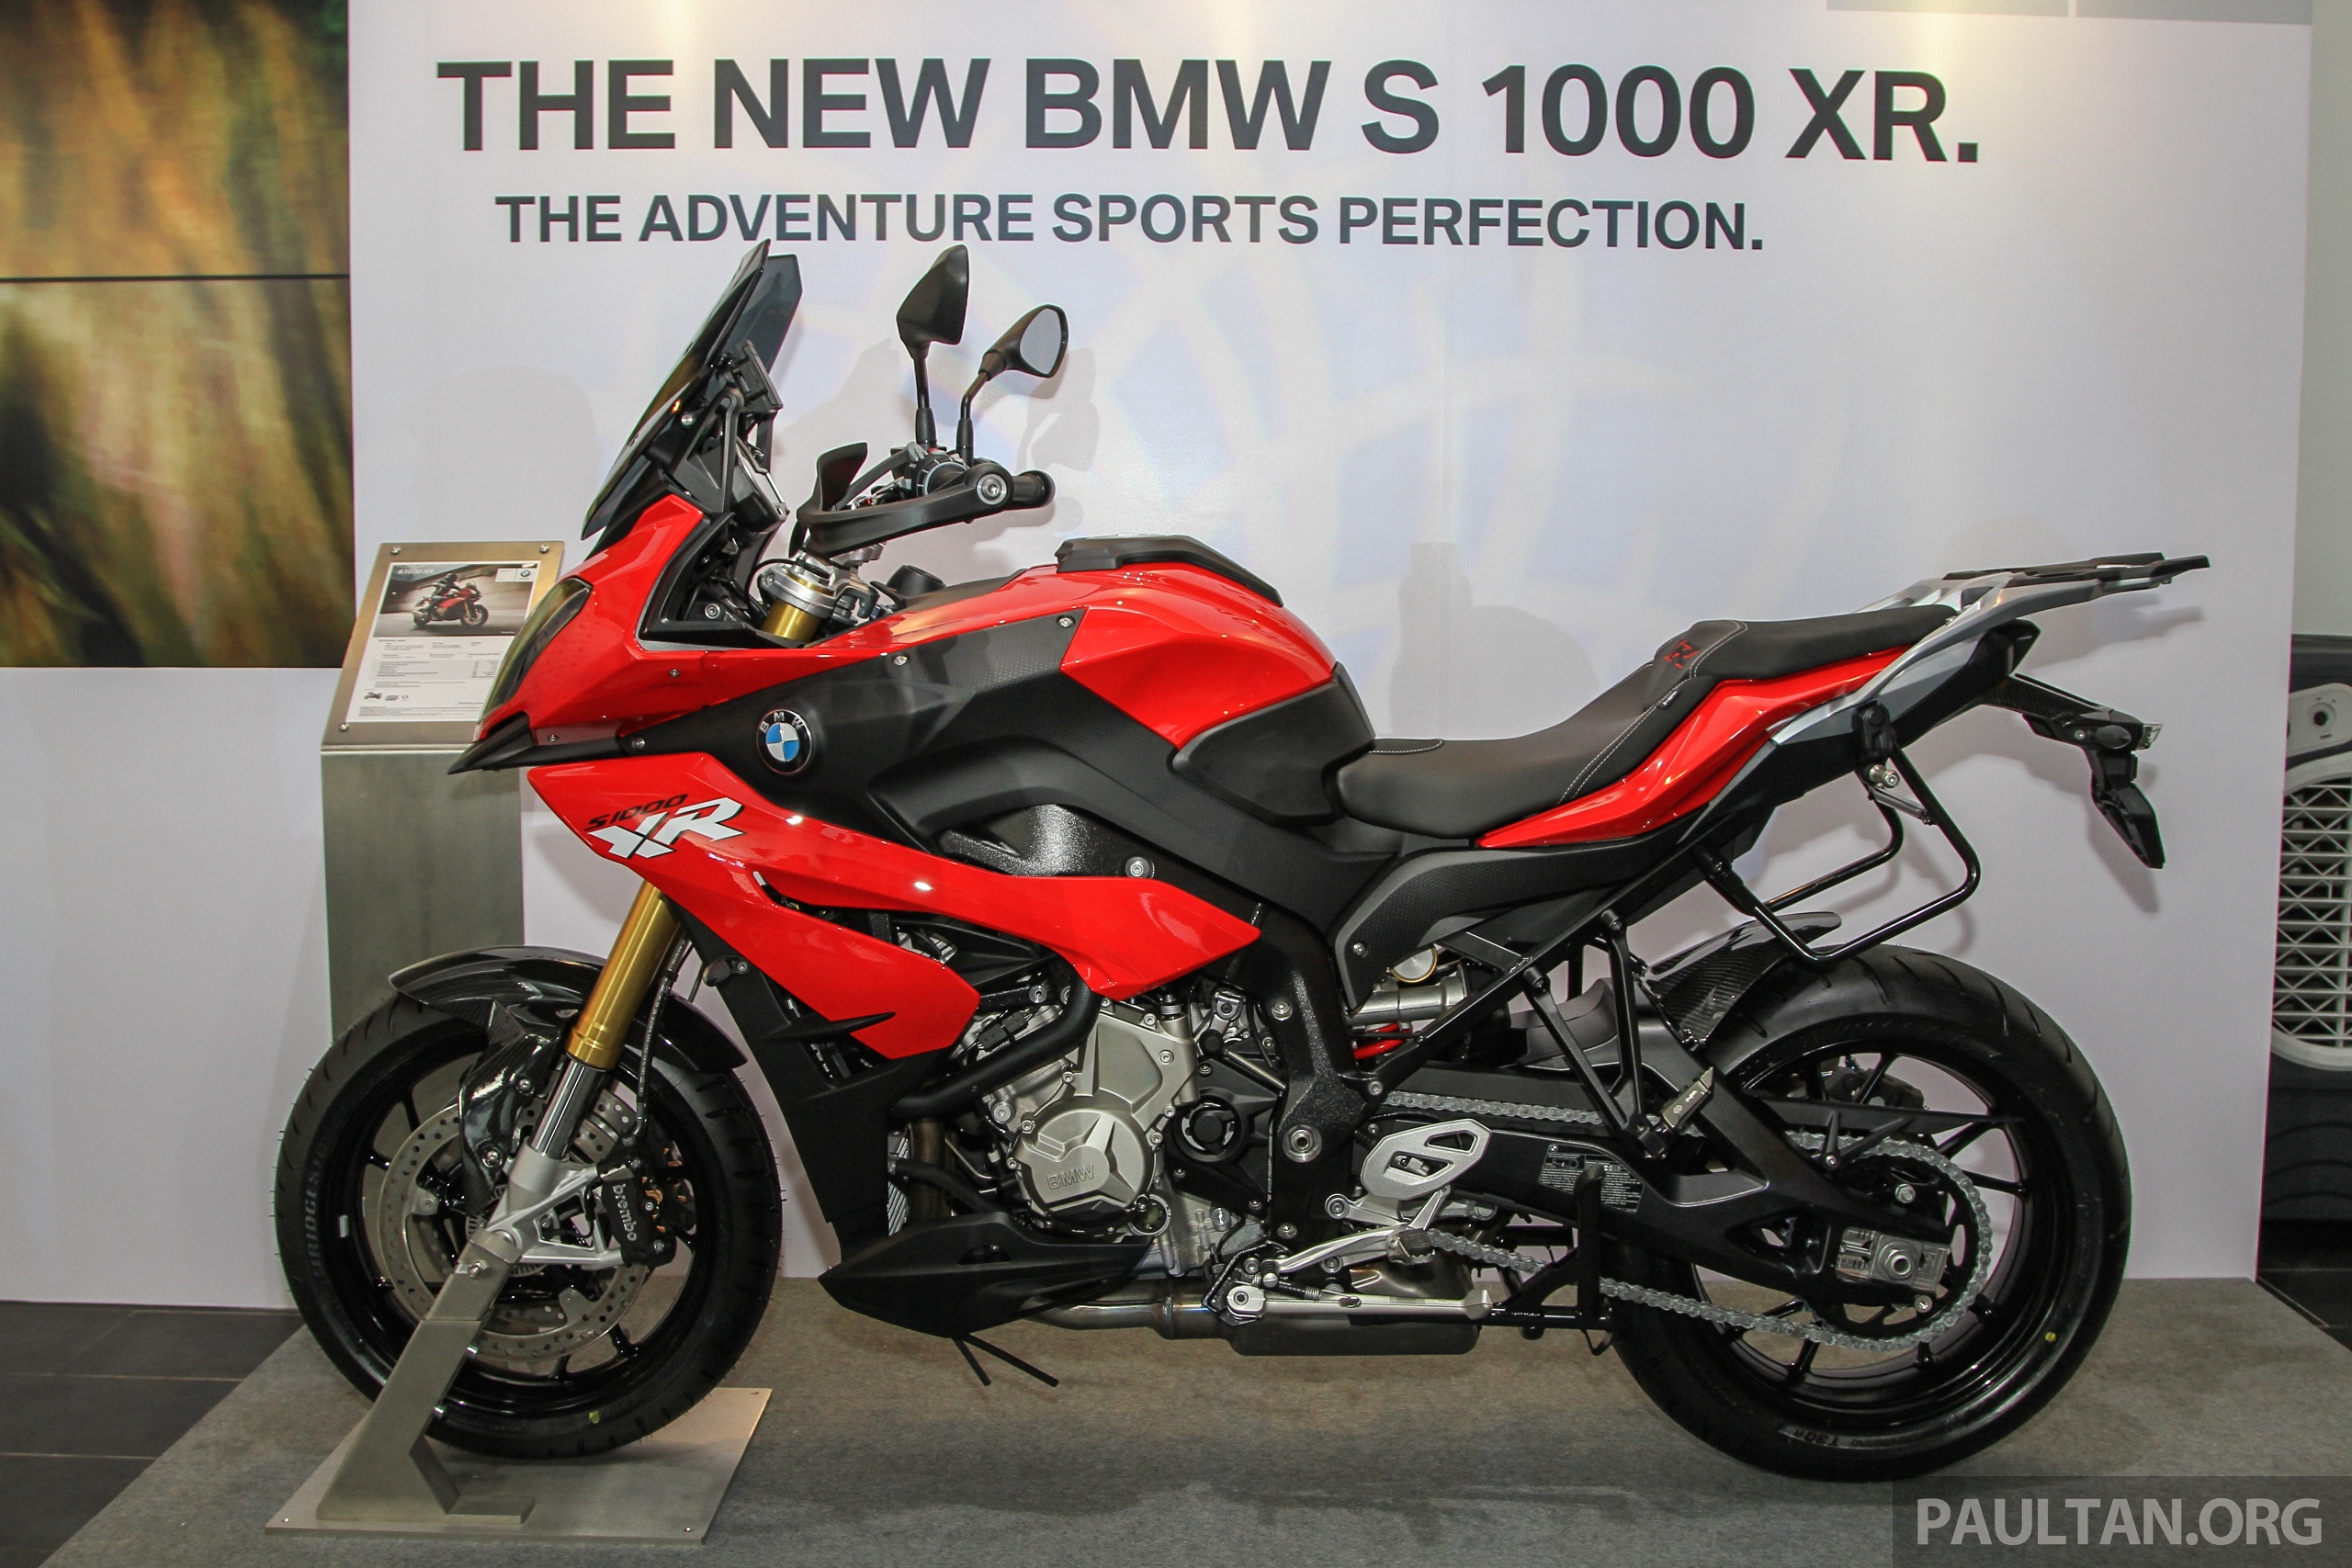 Bmw S 1000 Xr R 1200 Rs Launched From Rm102k Image 361057